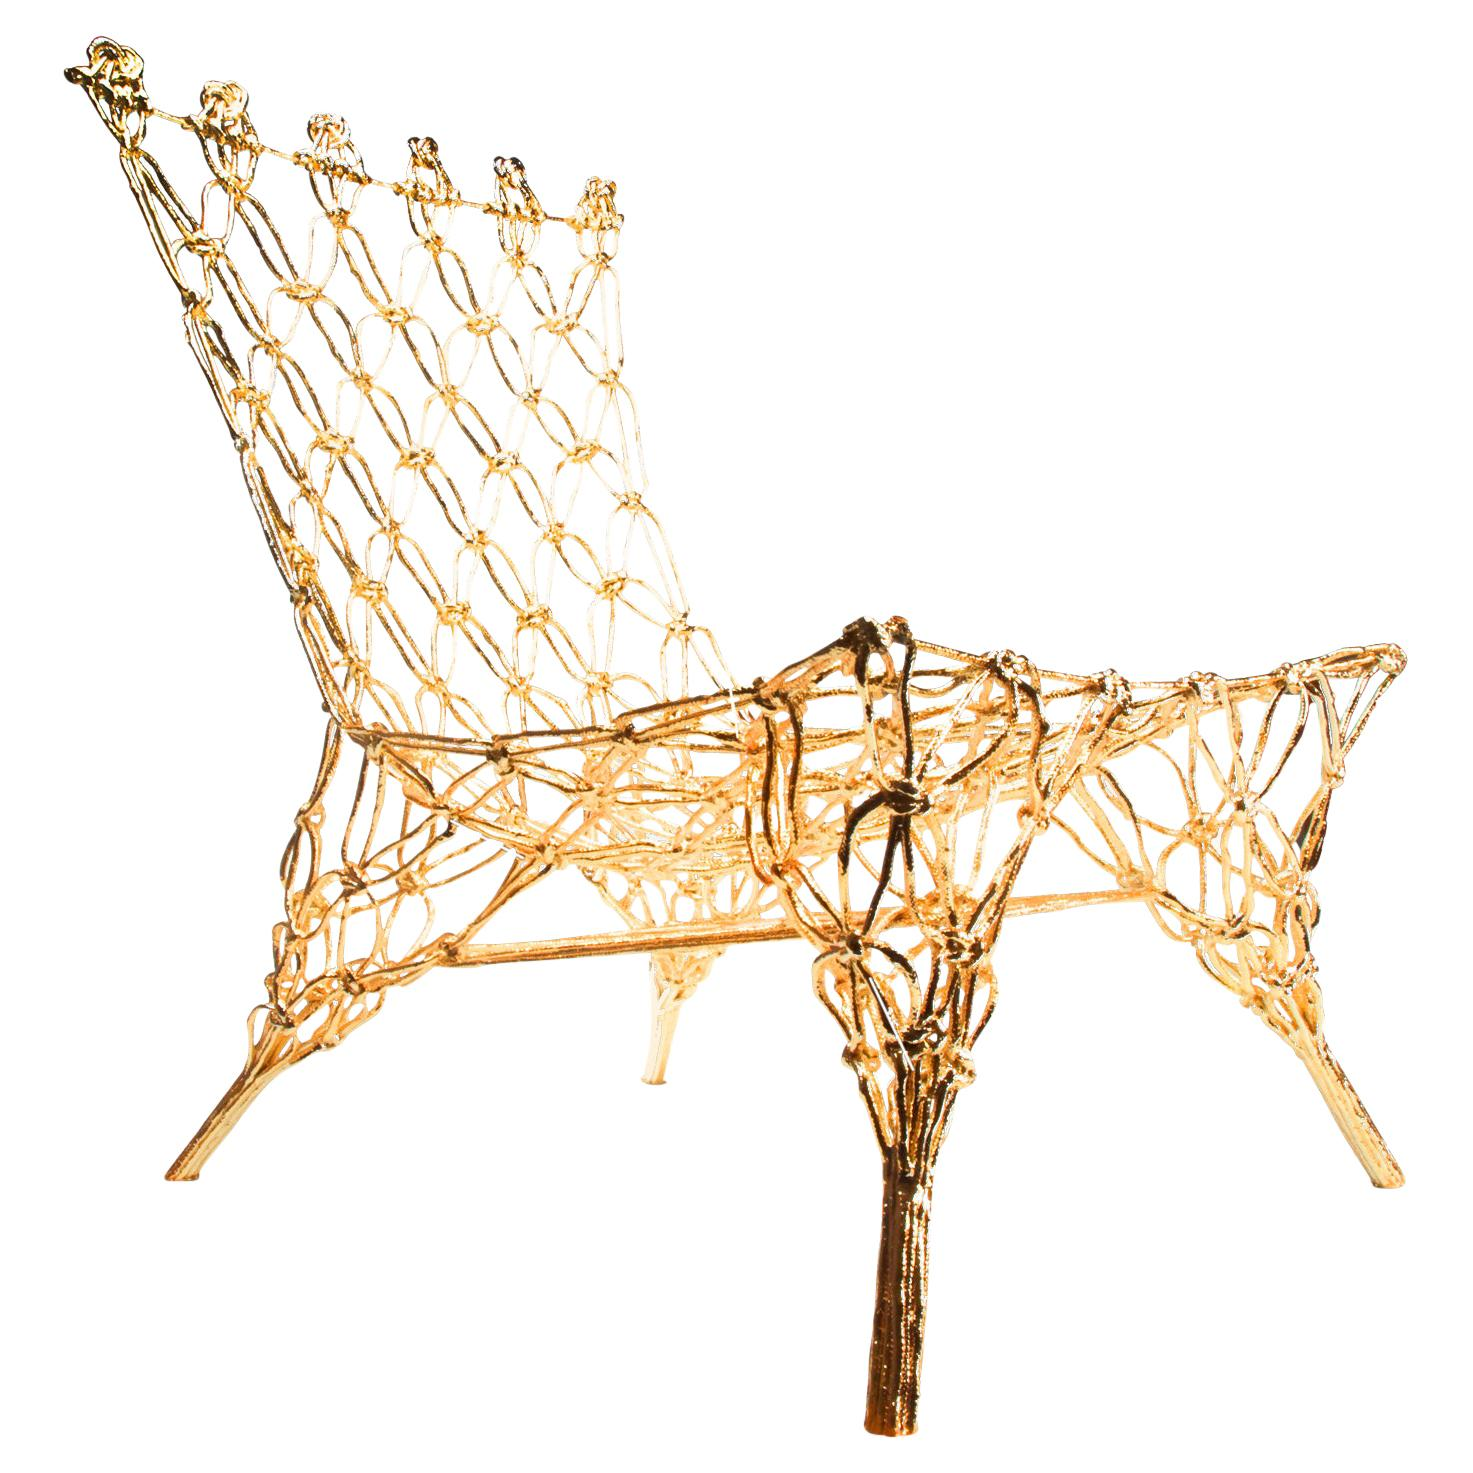 Knotted Chair, Gold, by Marcel Wanders, Hand-Knotted Chair, 2009, Limited